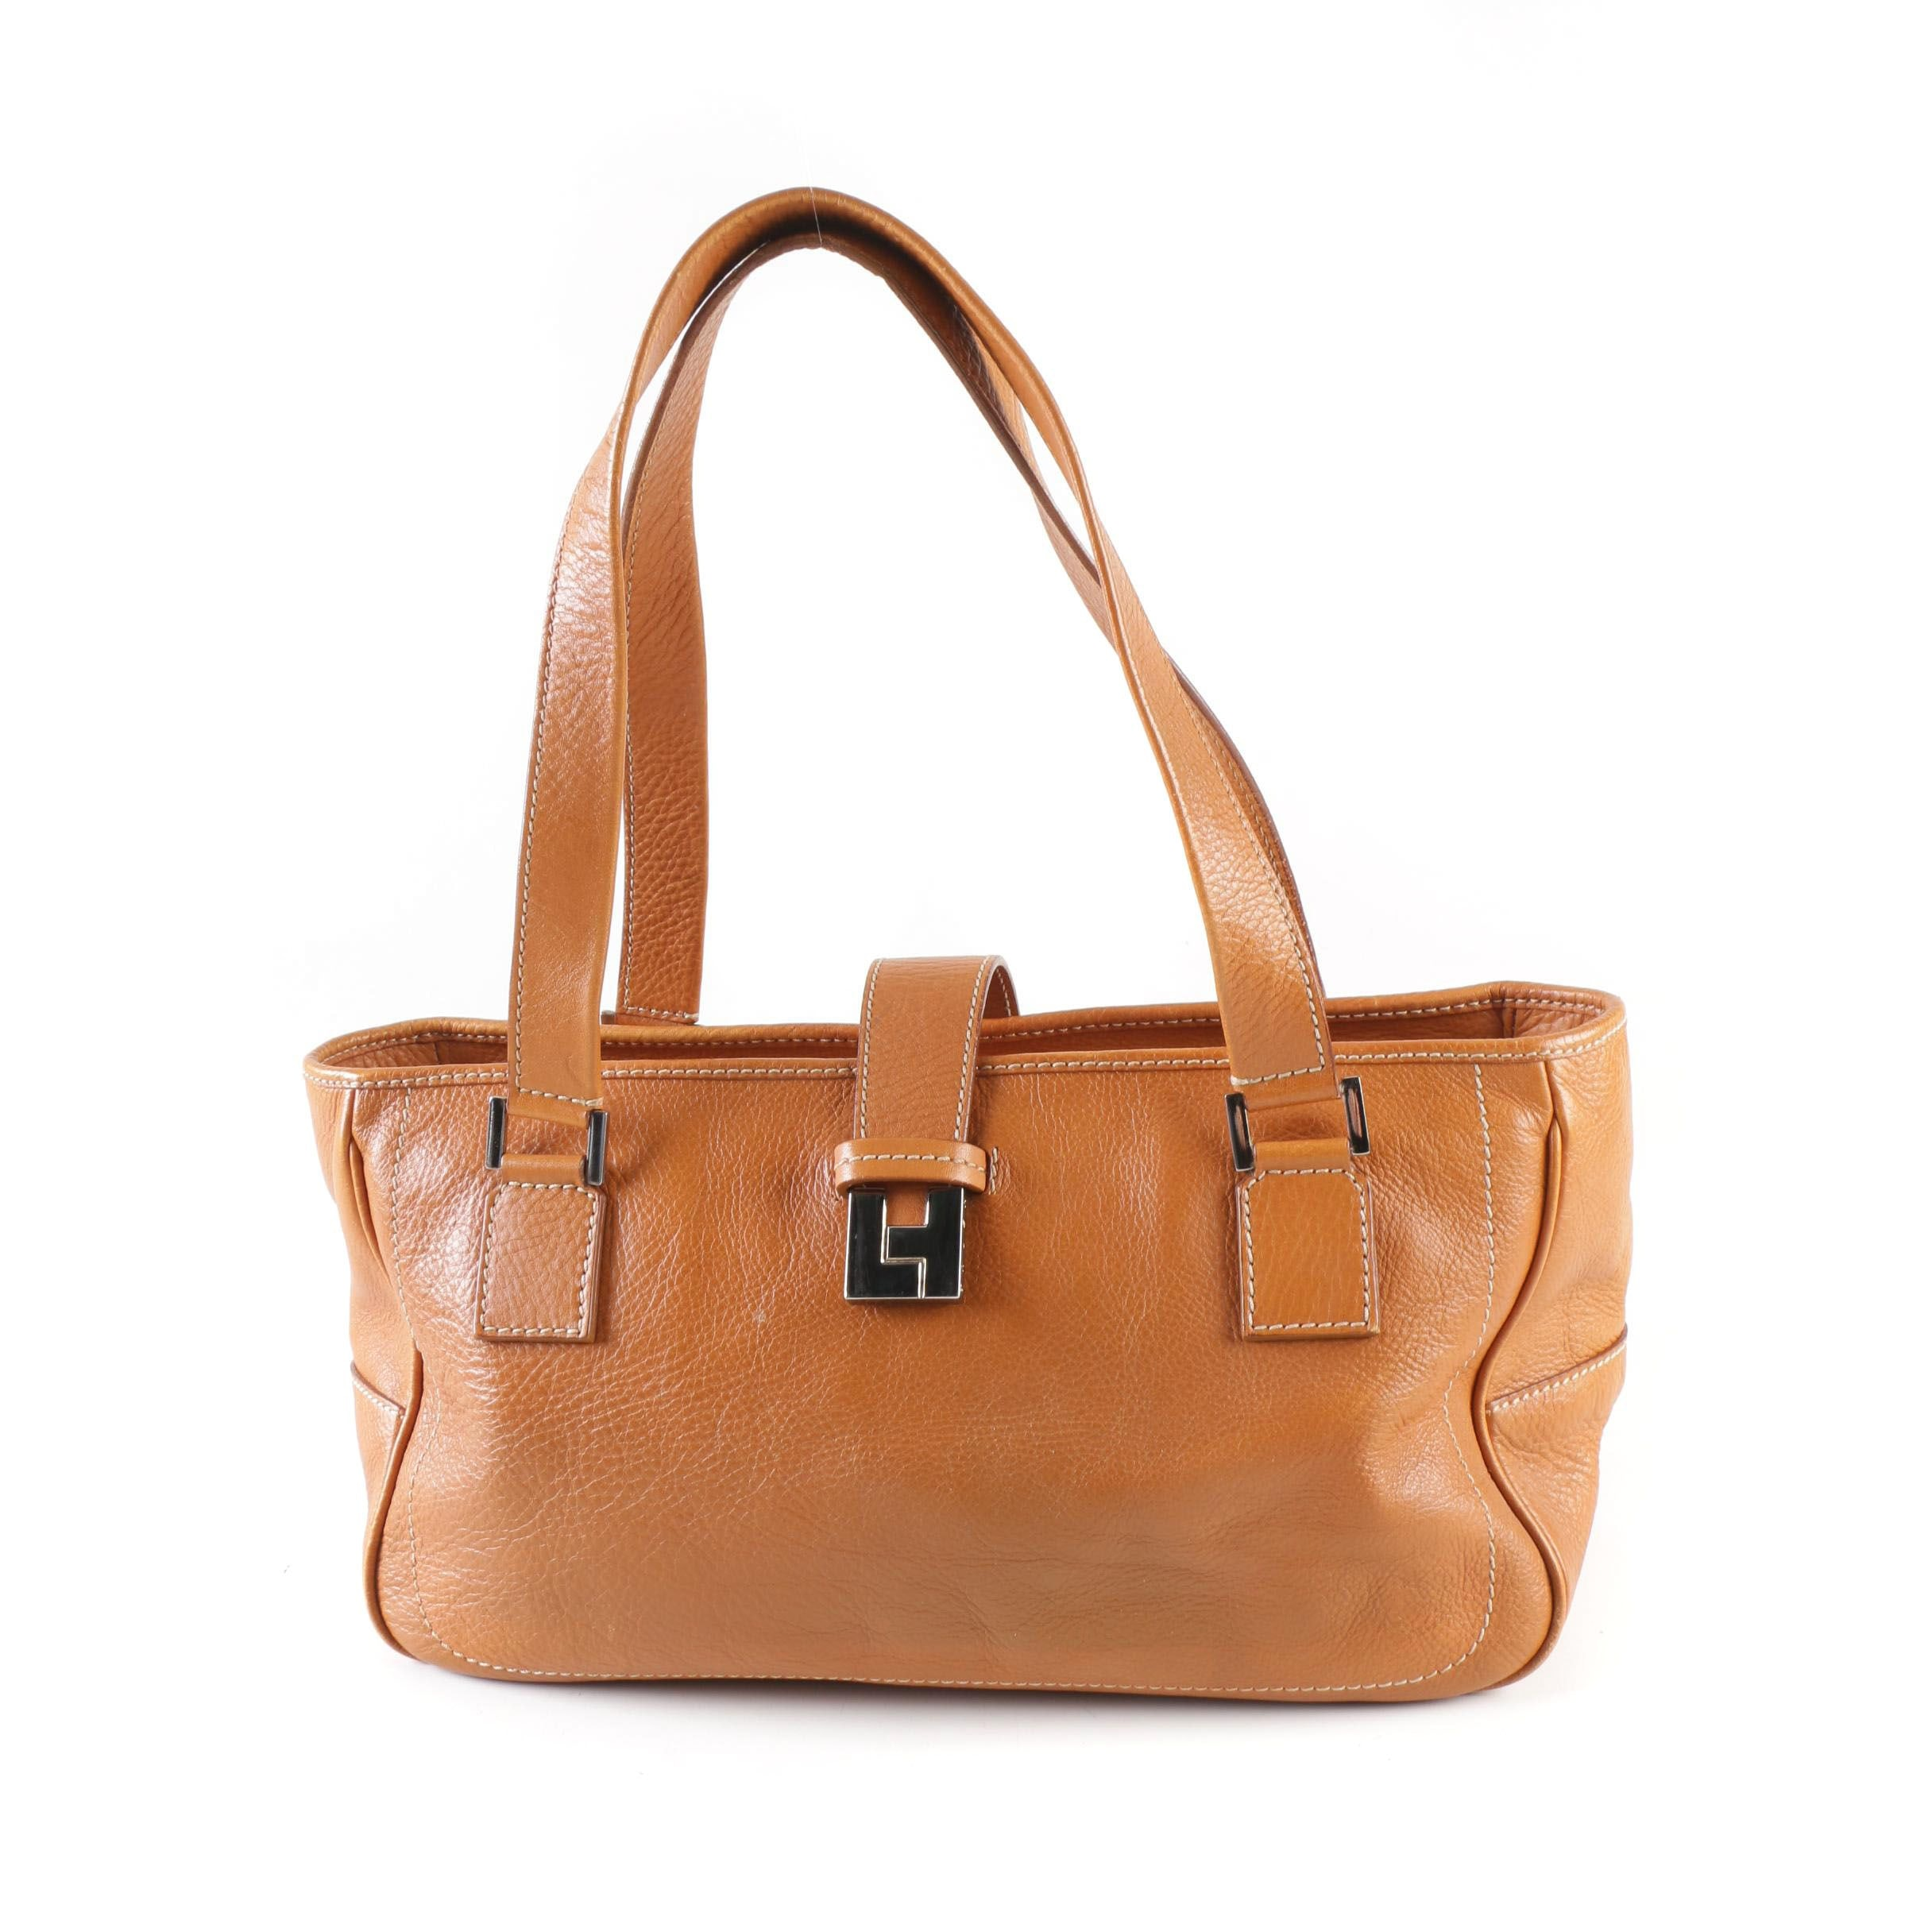 Lambertson Truex Leather Tote Shoulder Bag with Contrast Stitching